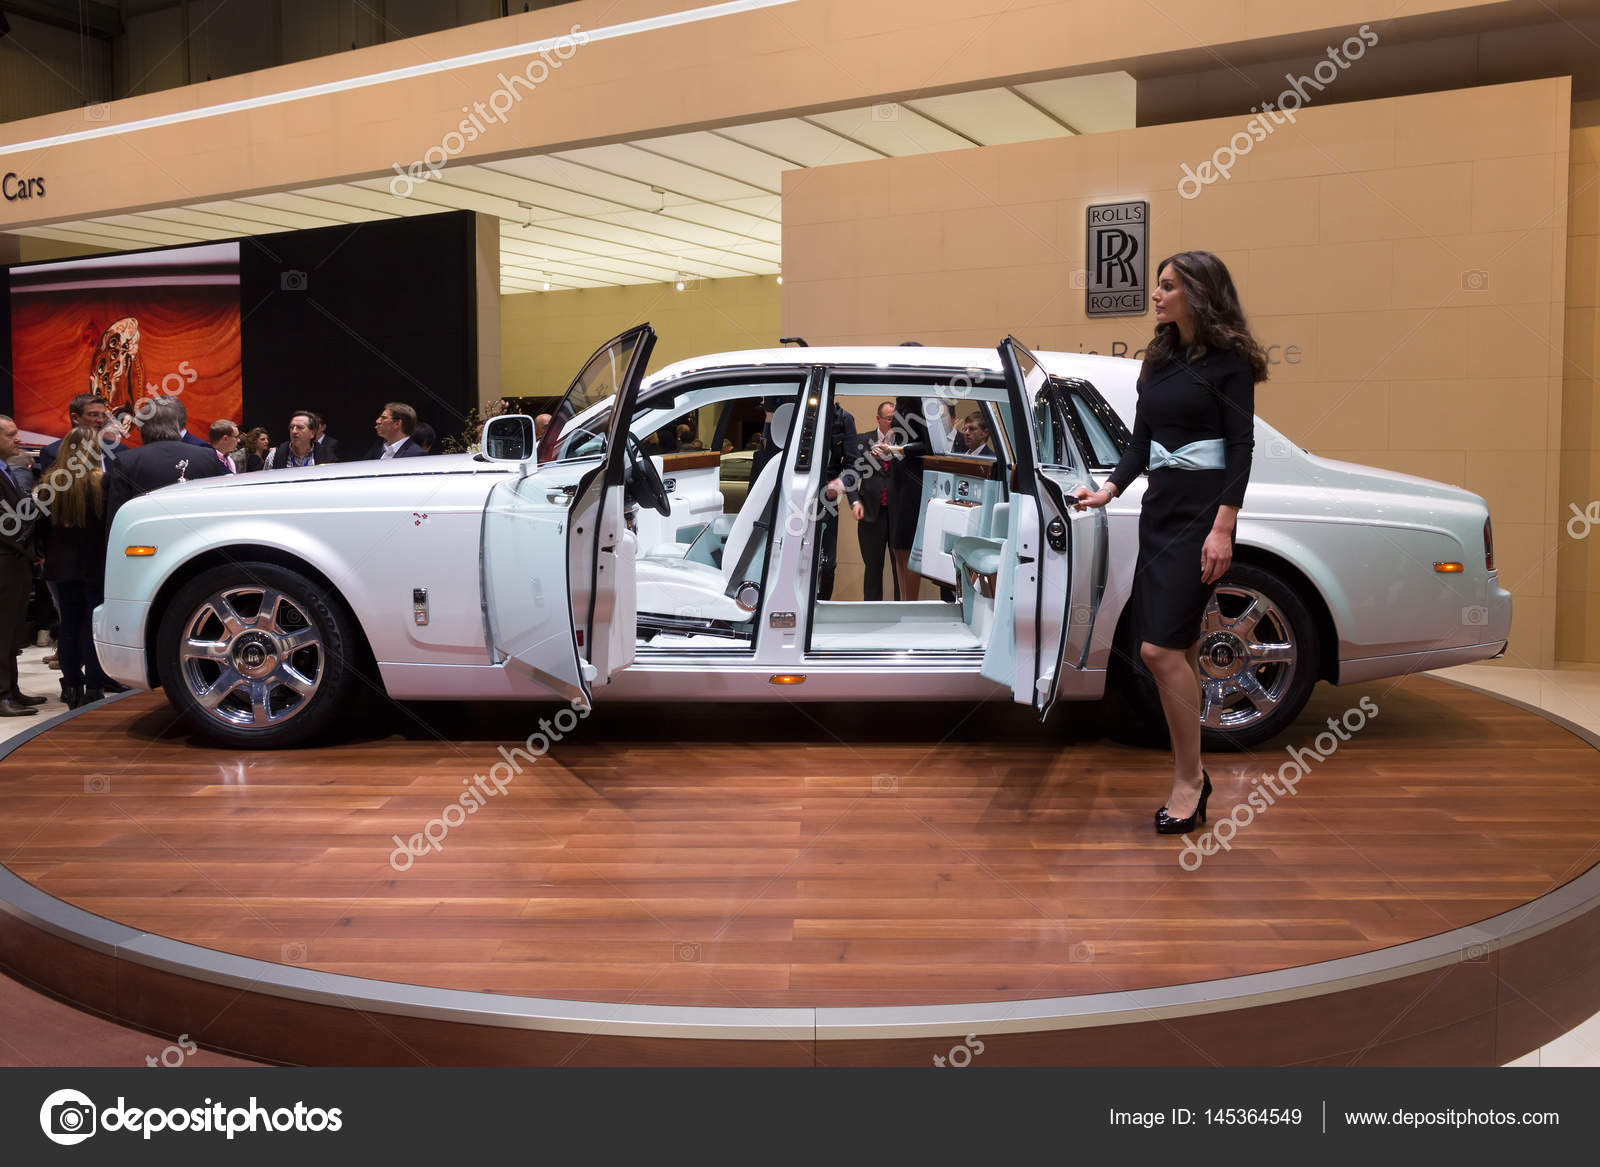 Phantom Serenity Rolls Royce Phantom Serenity Stock Editorial Photo Foto Vdw